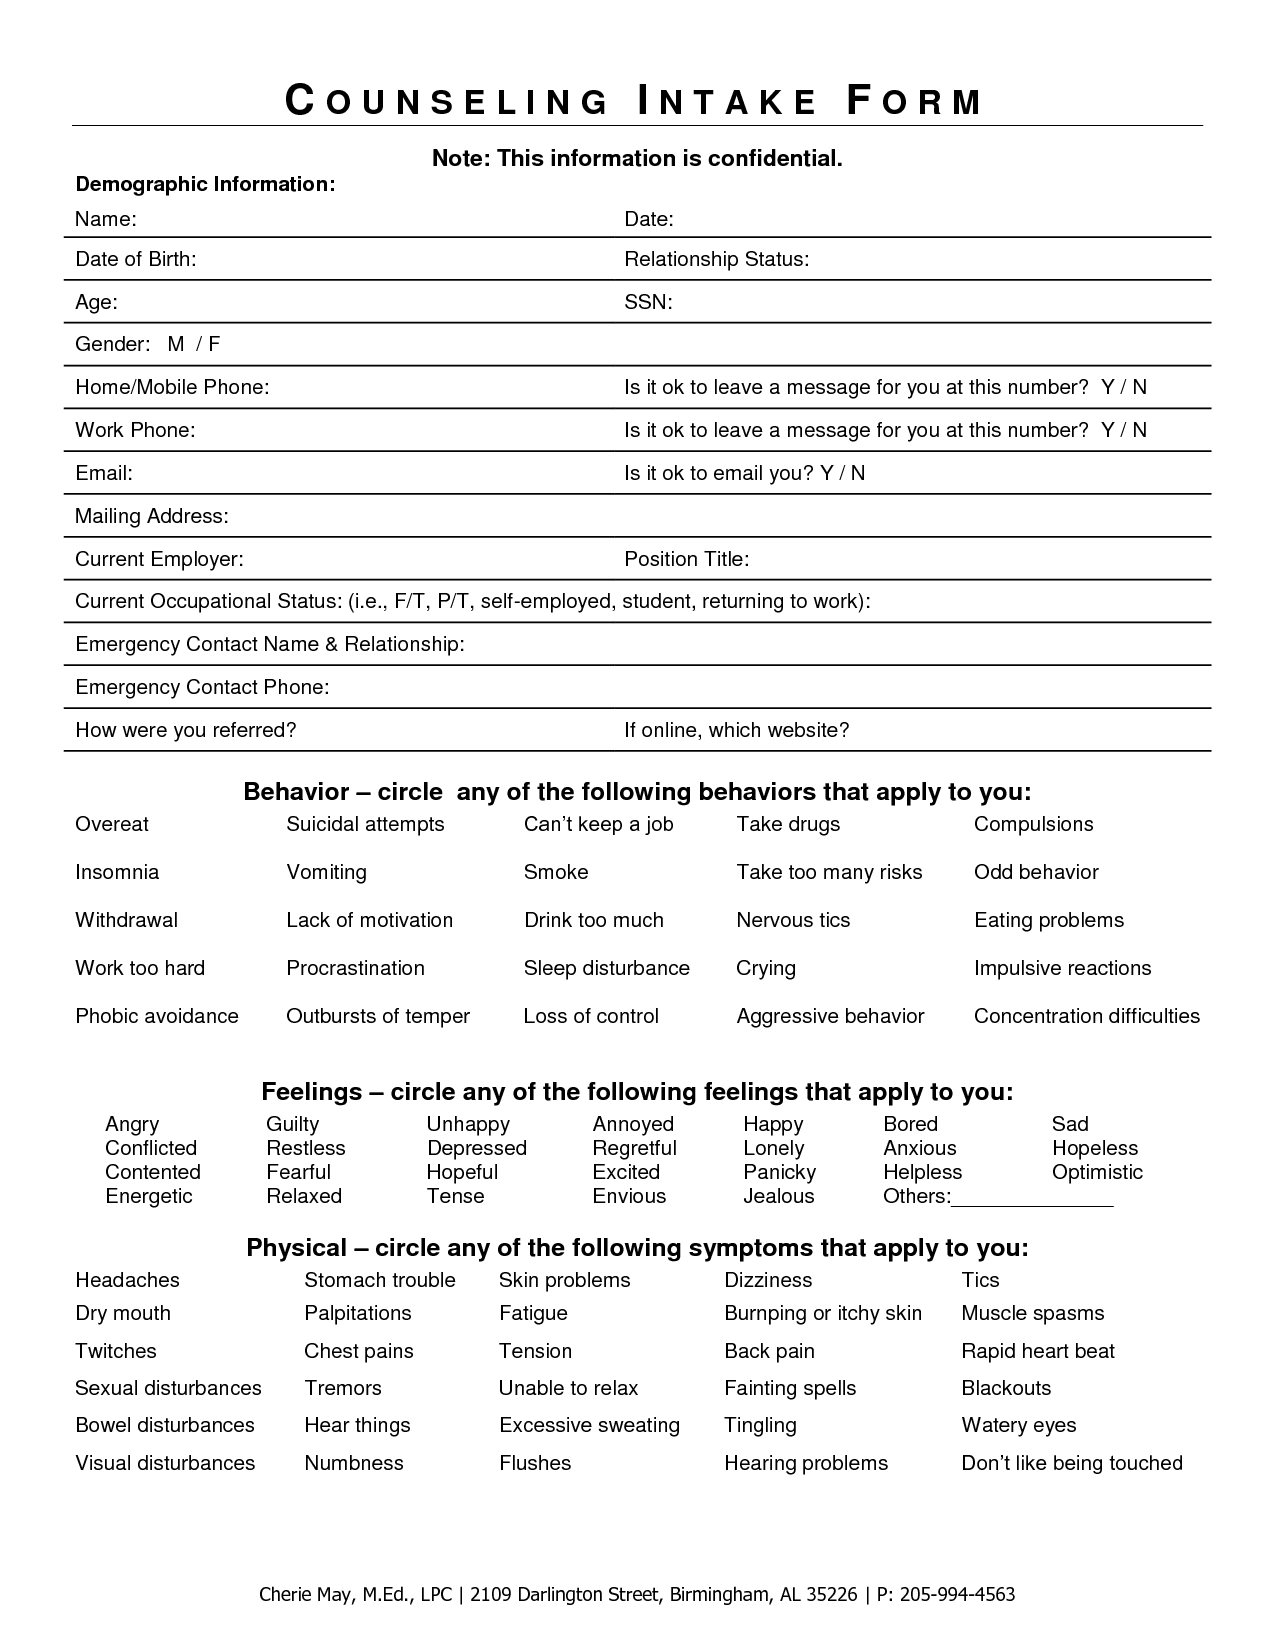 Intake Form For Counseling Clients